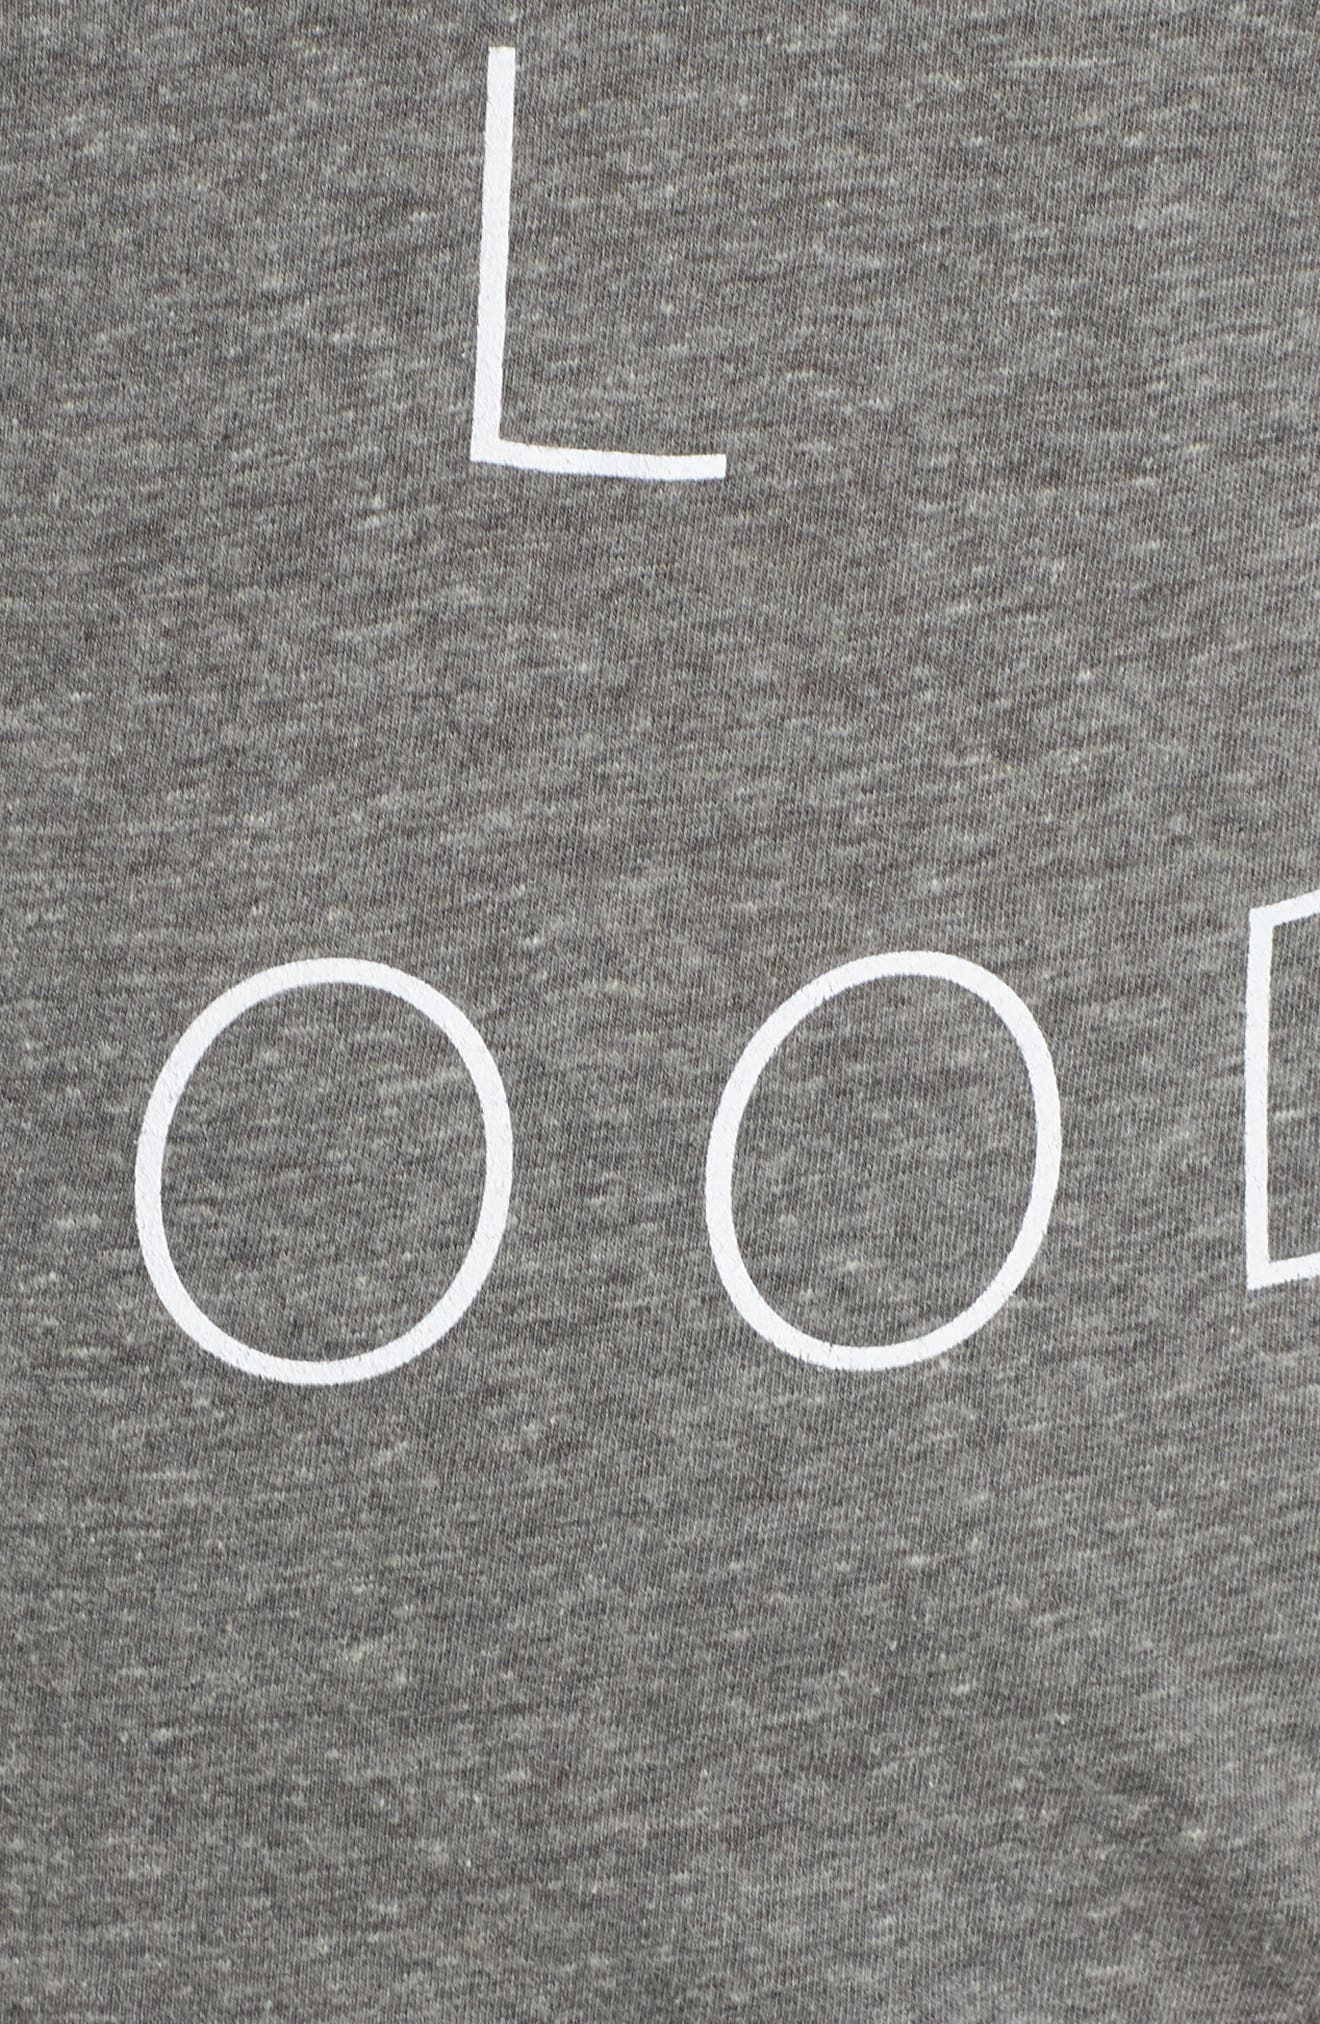 Casey It's All Good Tee,                             Alternate thumbnail 6, color,                             HEATHER